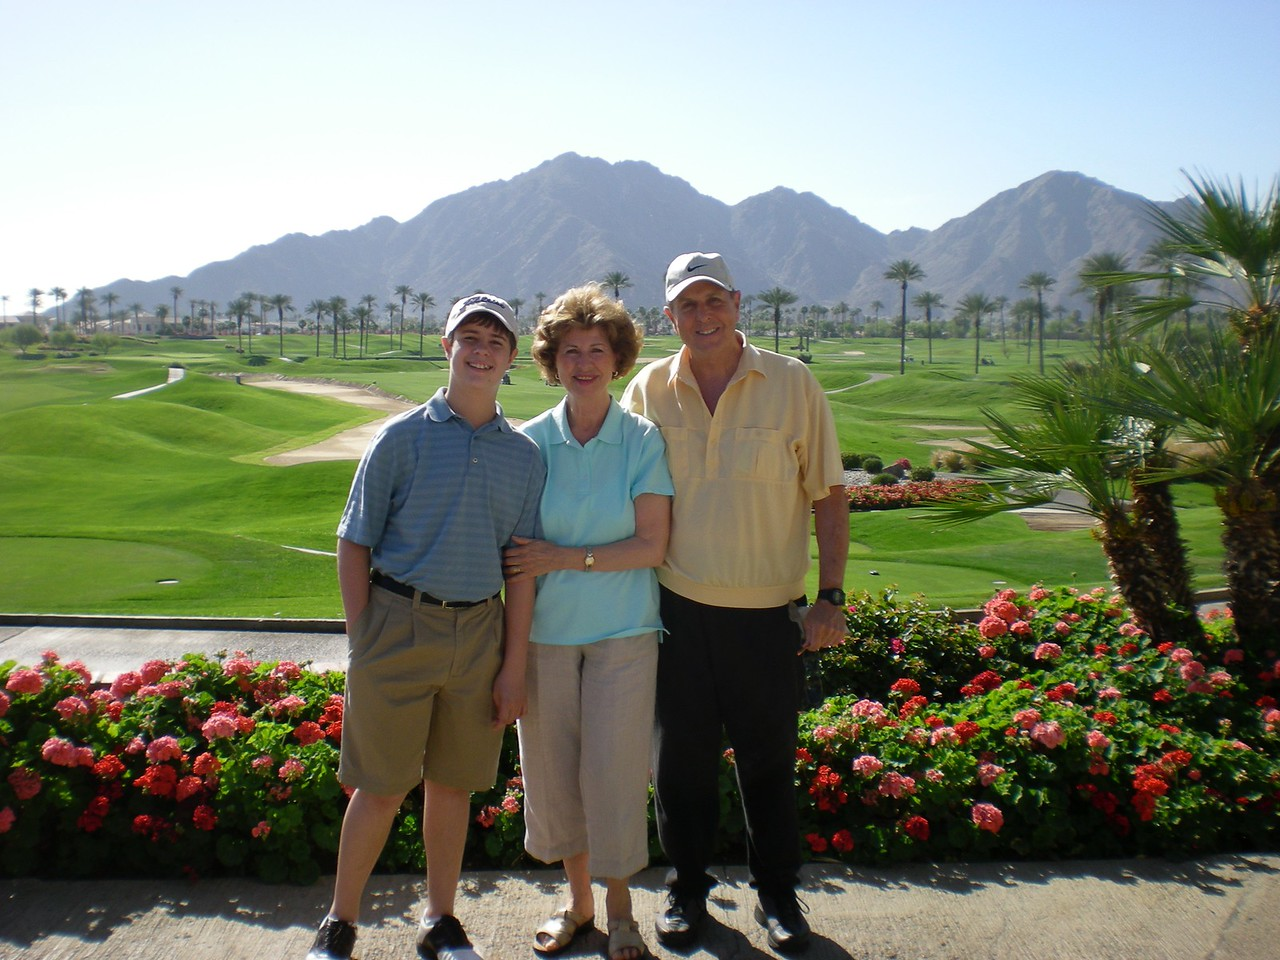 Tom, Paul and Betty over looking the fairway at La Quinta